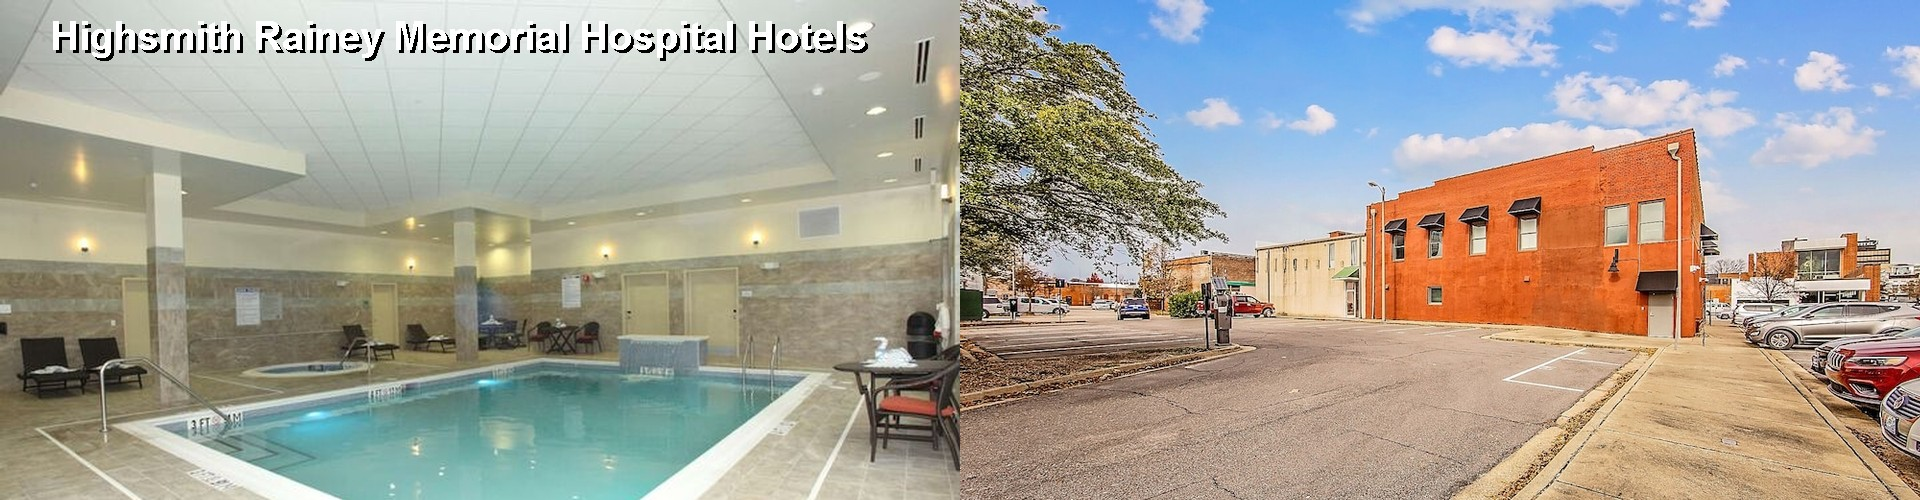 4 Best Hotels near Highsmith Rainey Memorial Hospital